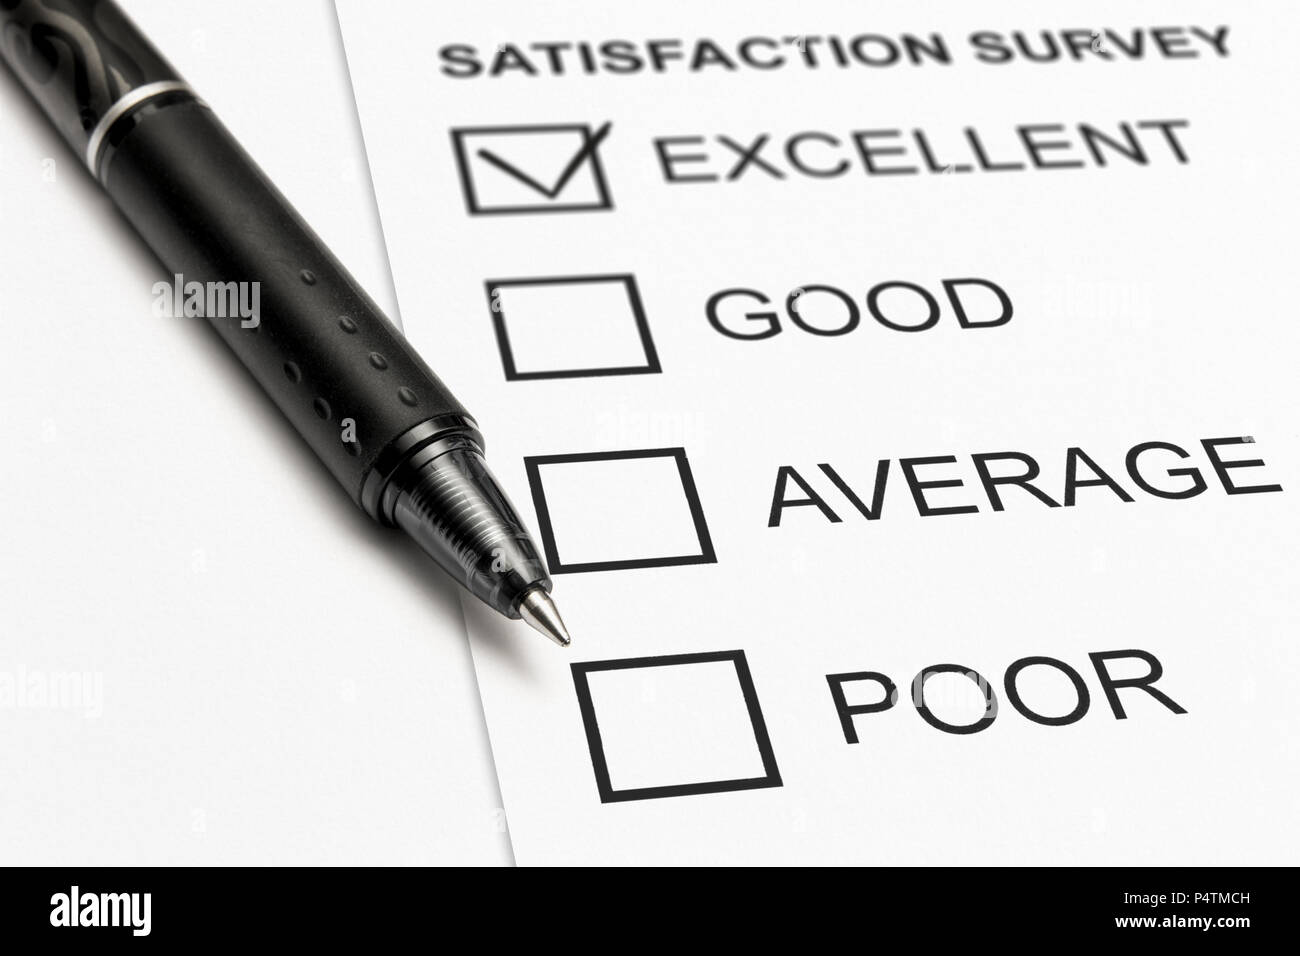 close up of a satisfaction survey with a check mark on excellent - Stock Image